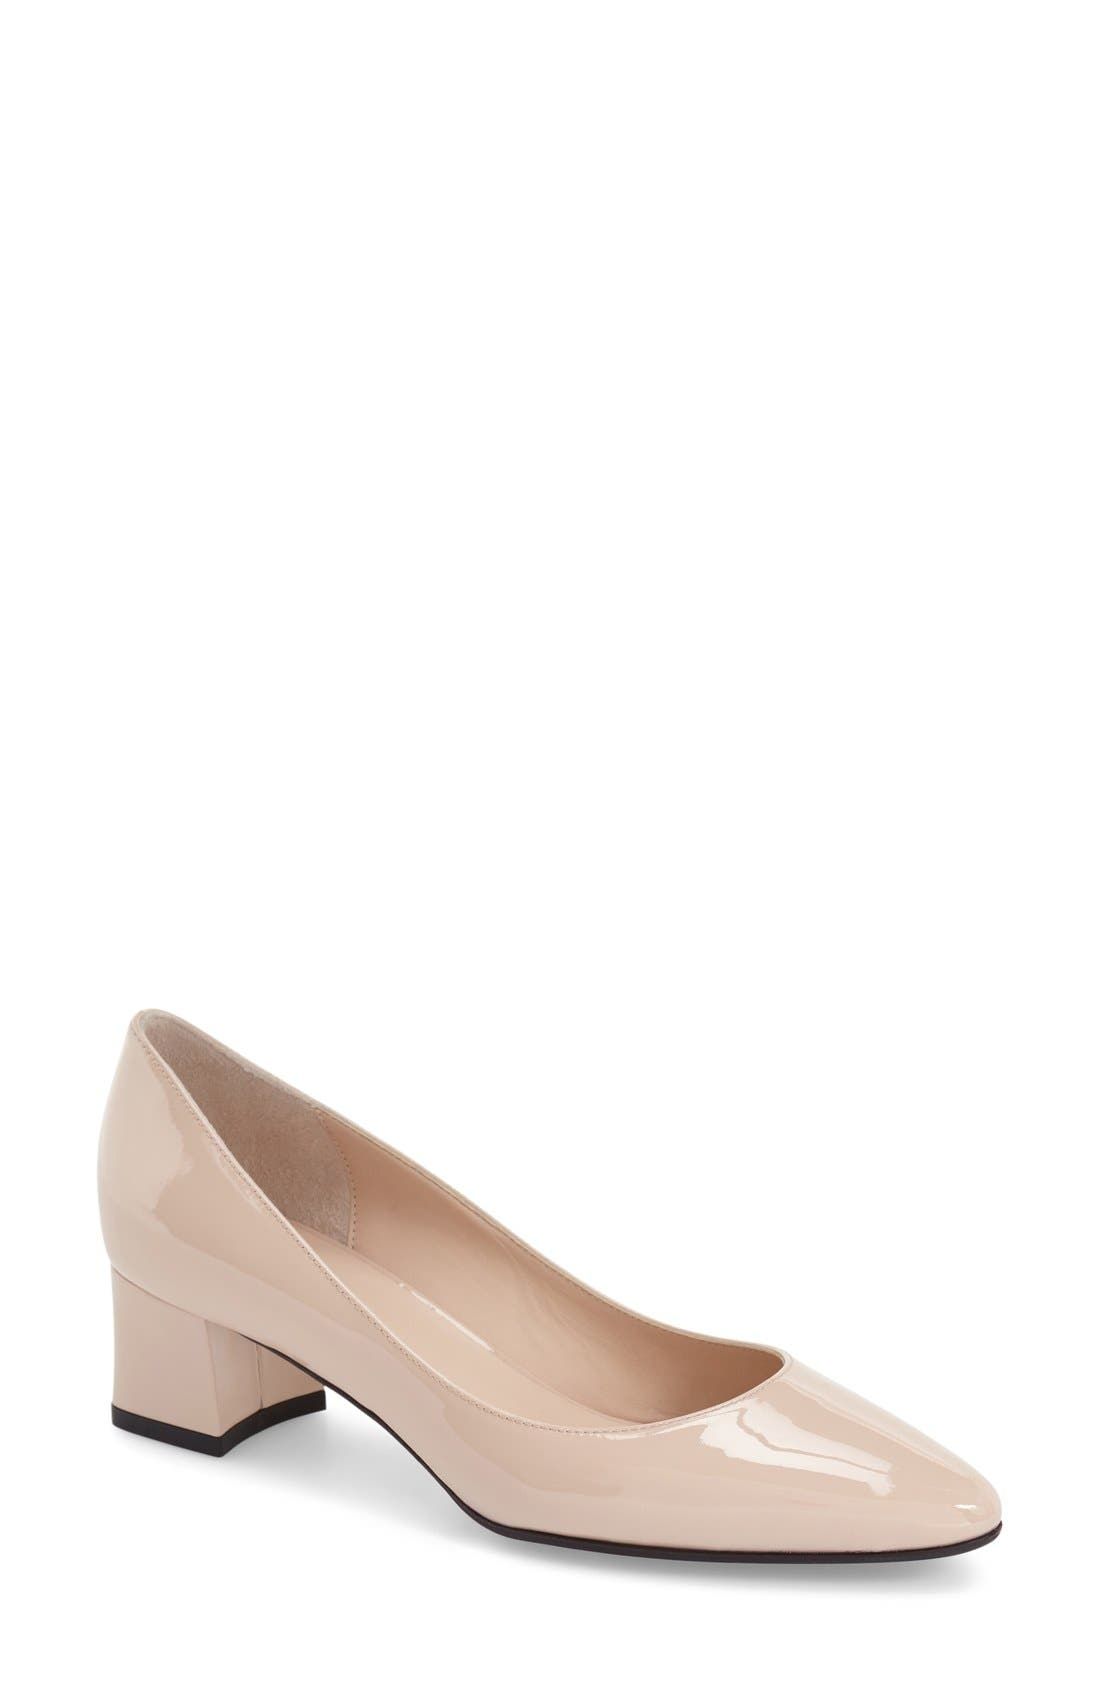 AQUATALIA 'Pheobe' Weatherproof Almond Toe Pump